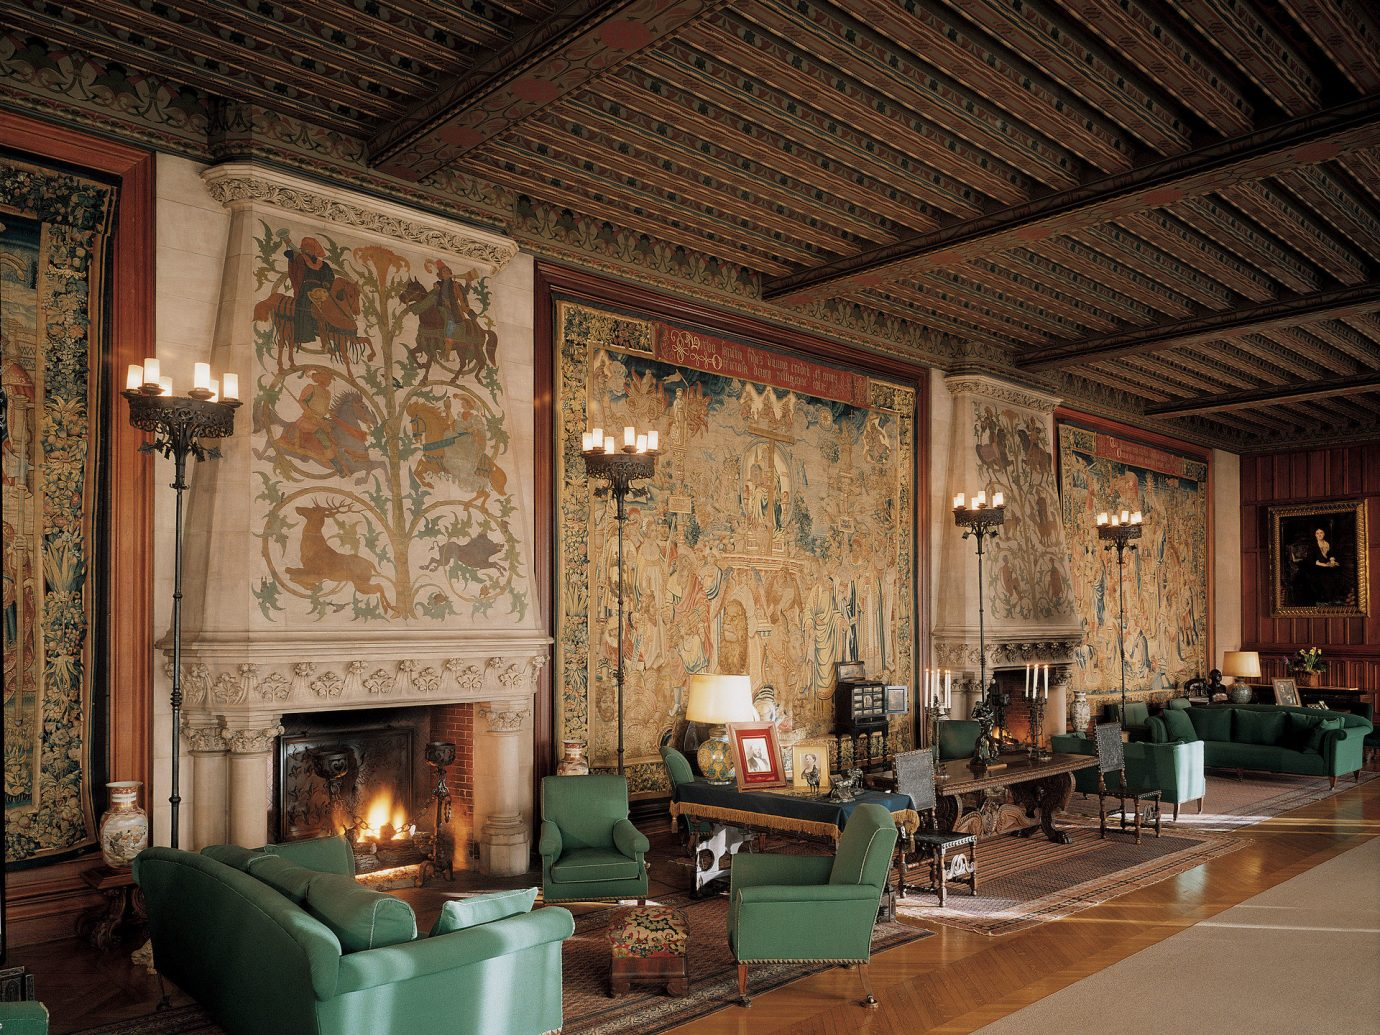 charming cozy Elegant extravagant fancy Fireplace foyer Historic interior Lobby Lounge Luxury quaint regal Road Trips sophisticated Trip Ideas warm Weekend Getaways indoor ceiling room property Living estate living room home interior design wood area furniture